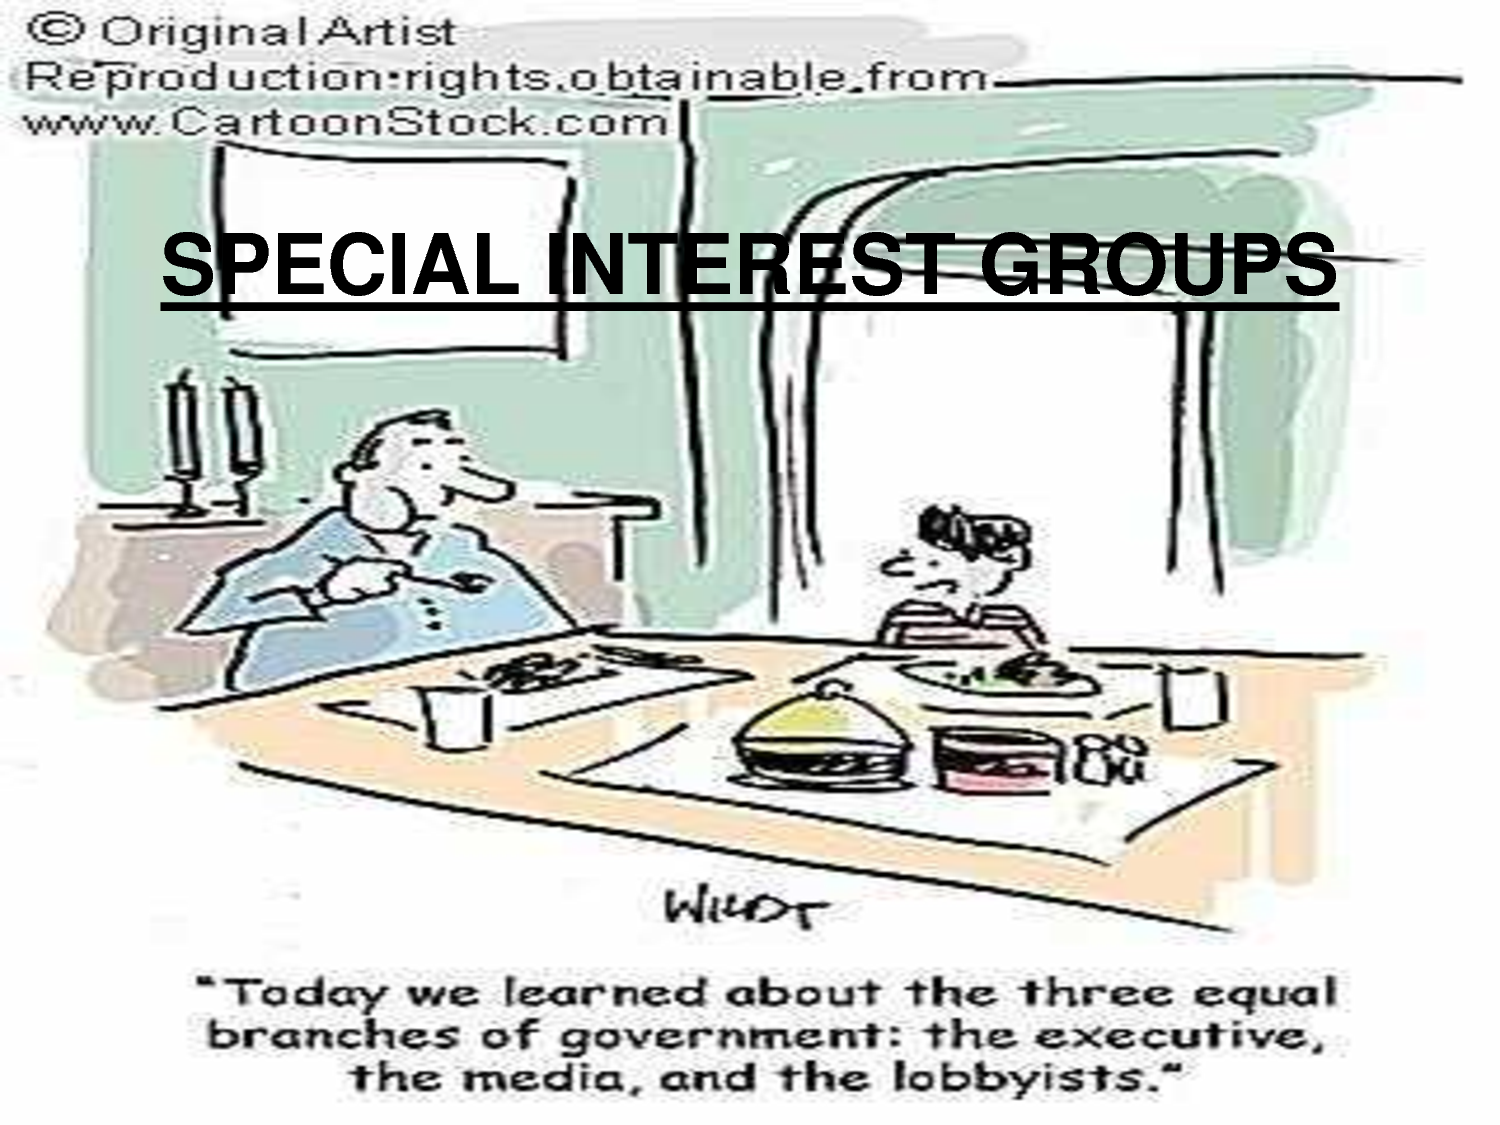 special interests A special interest film is defined mostly by the narrowness of it audience as opposed to a mainstream film, which will, its producers hope, appeal to a large portion of the potential viewing audience, a special interest film is expected to appeal to a much more focused segment of the audience-most likely those viewers who already have an interest in the film's subject matter.